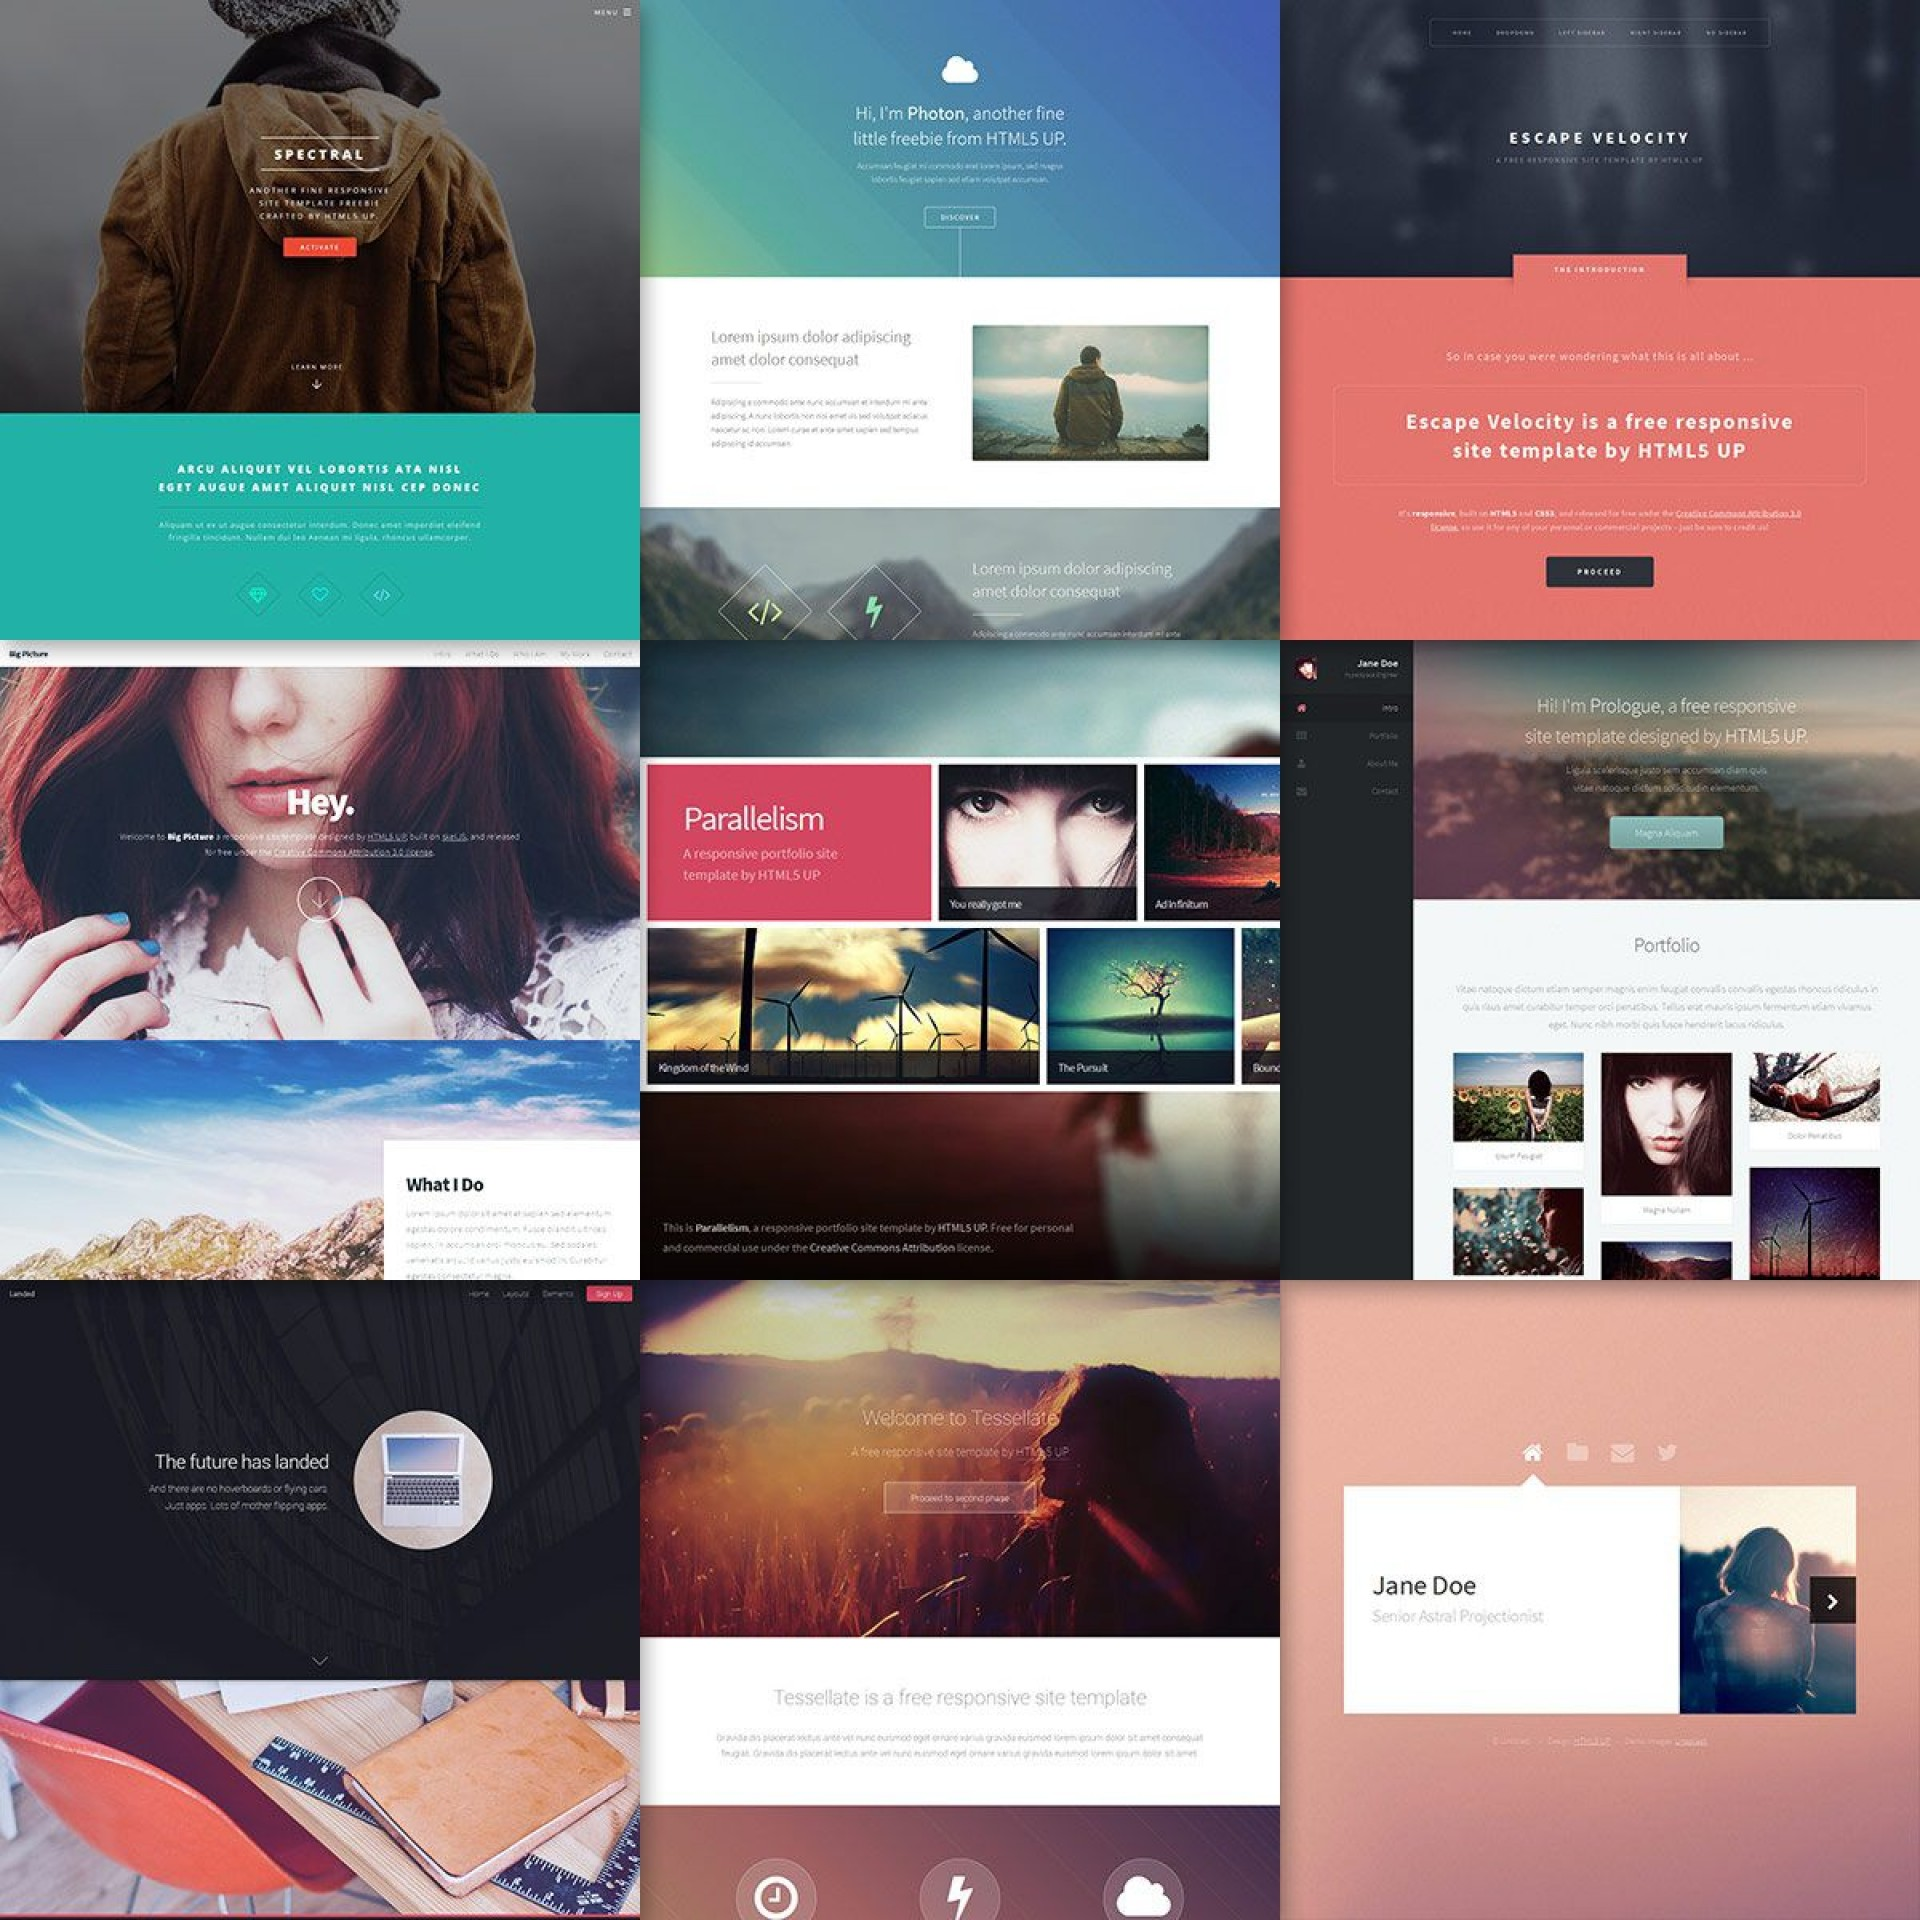 002 Incredible Download Web Template Html5 Idea  Photography Website Free Logistic Busines1920